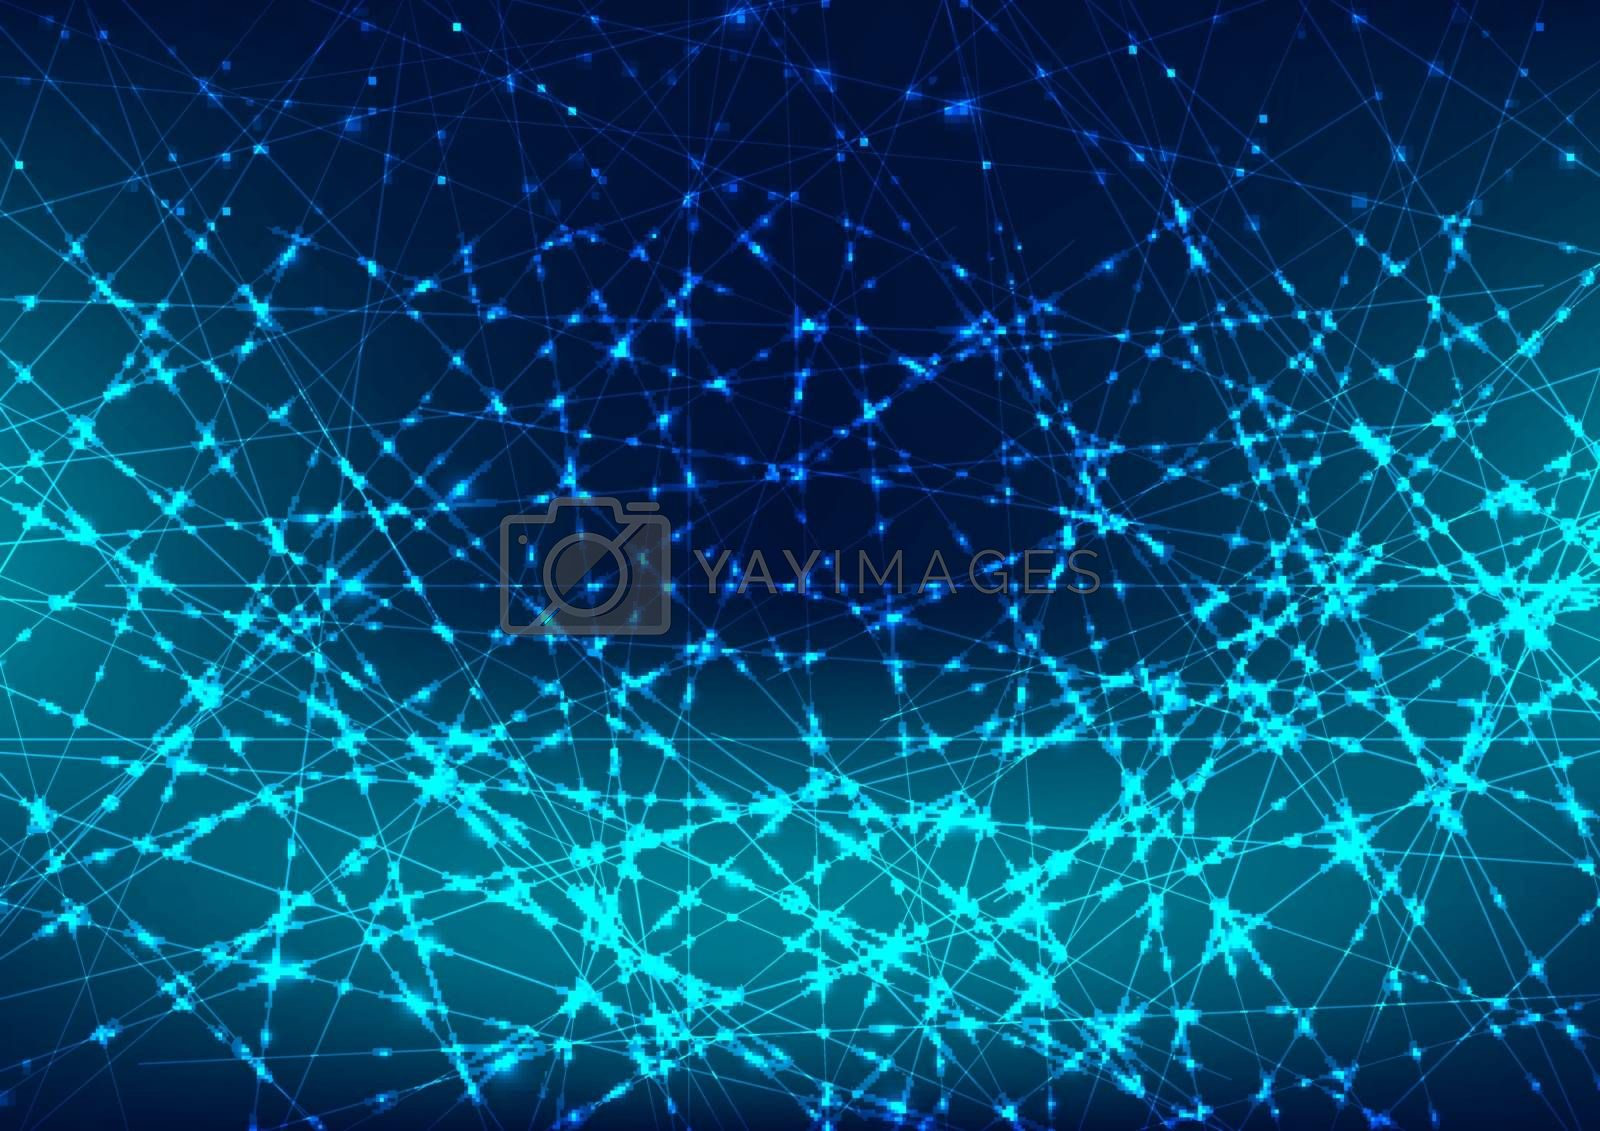 Abstract glowing blue laser line with sparkle lighting on dark blue space background. Digital technology futuristic concept. Vector illustration